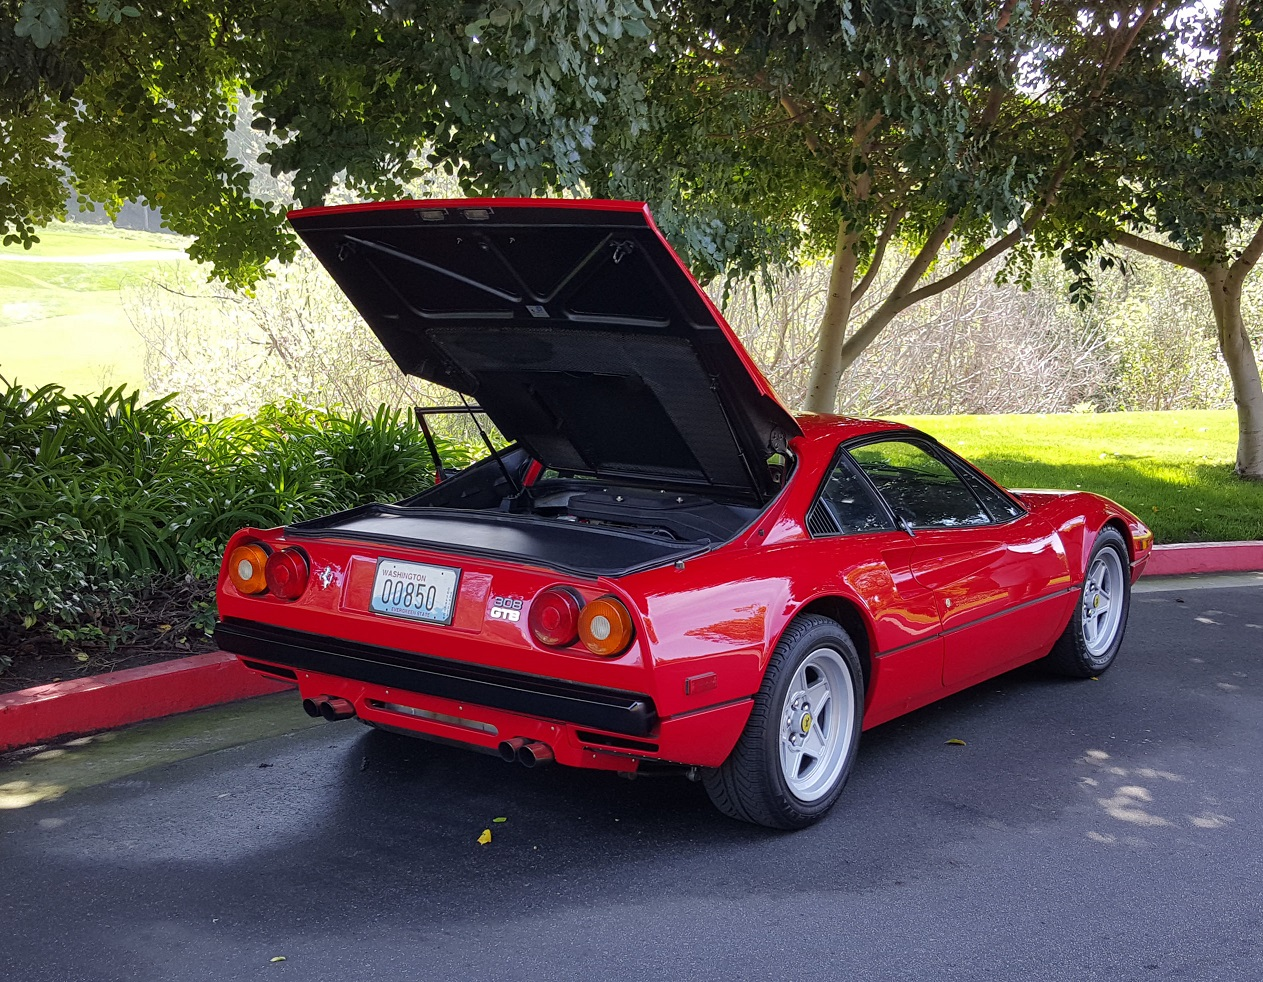 Carobu Engineering: Ferrari and High Performance Engine Rebuild Specialists, Dyno Testing and Tuning Experts.